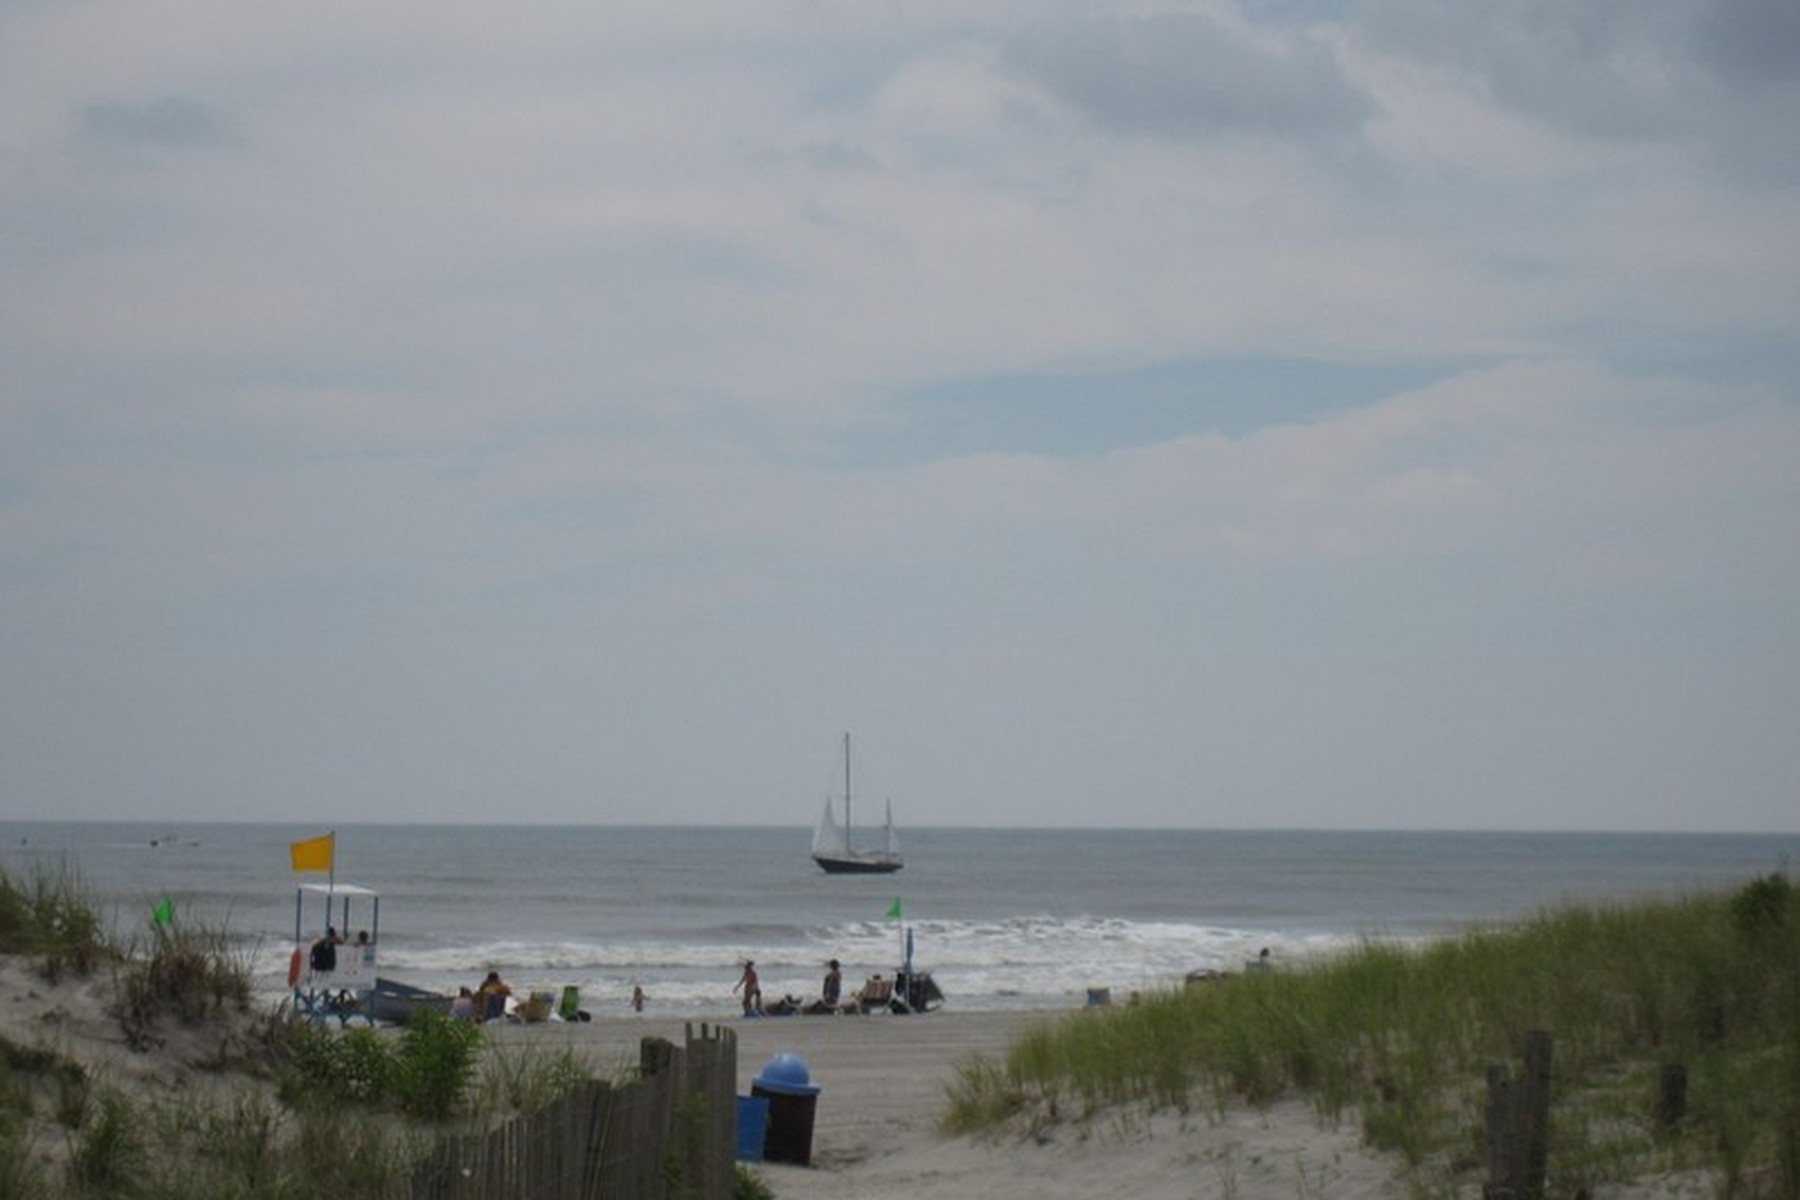 Land for Sale at 5 S Dudley Ave Ventnor, New Jersey, 08406 United States